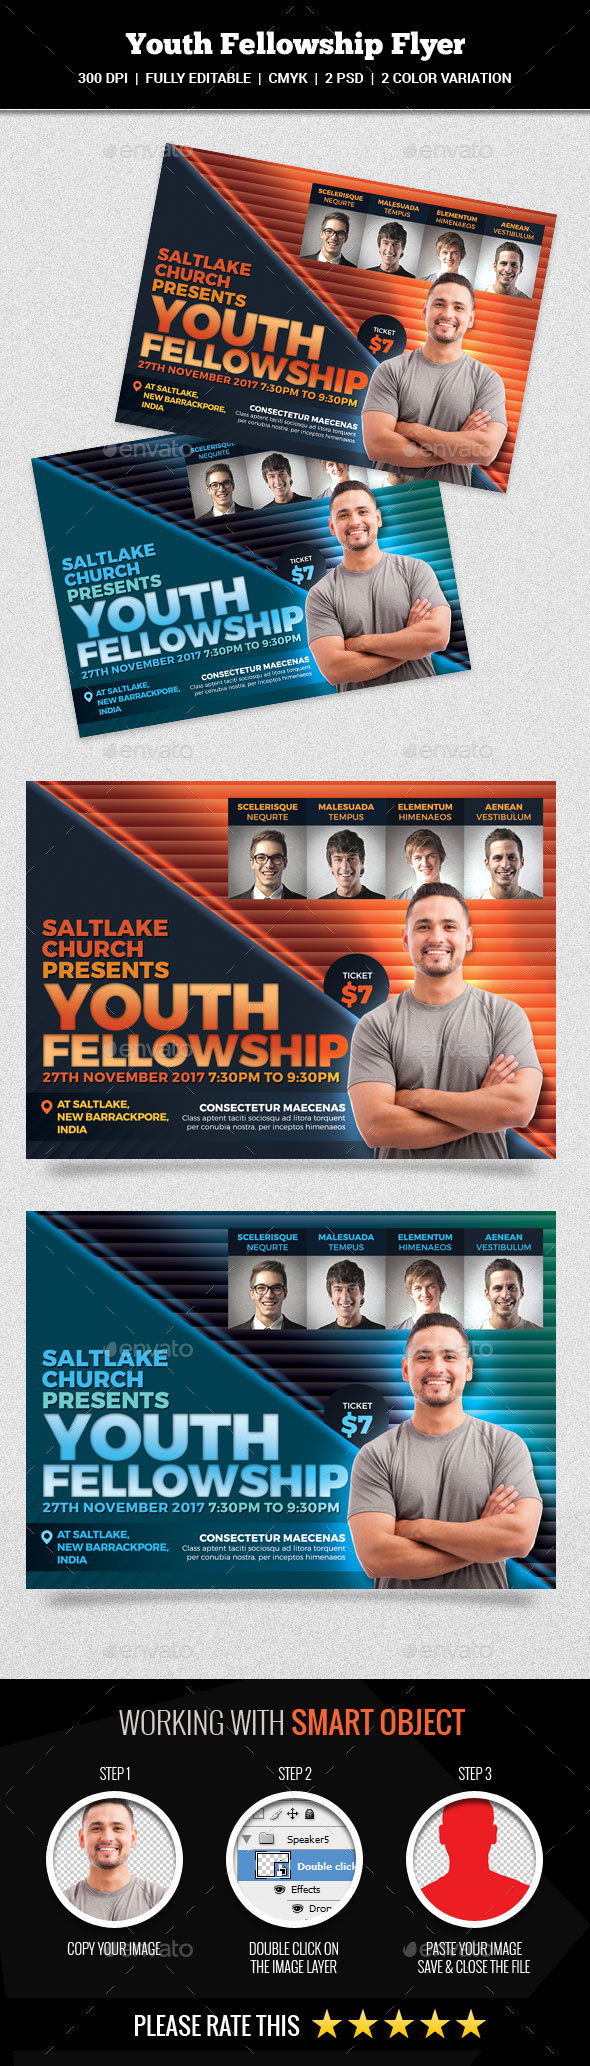 Youth Fellowship Flyer - Church Flyers